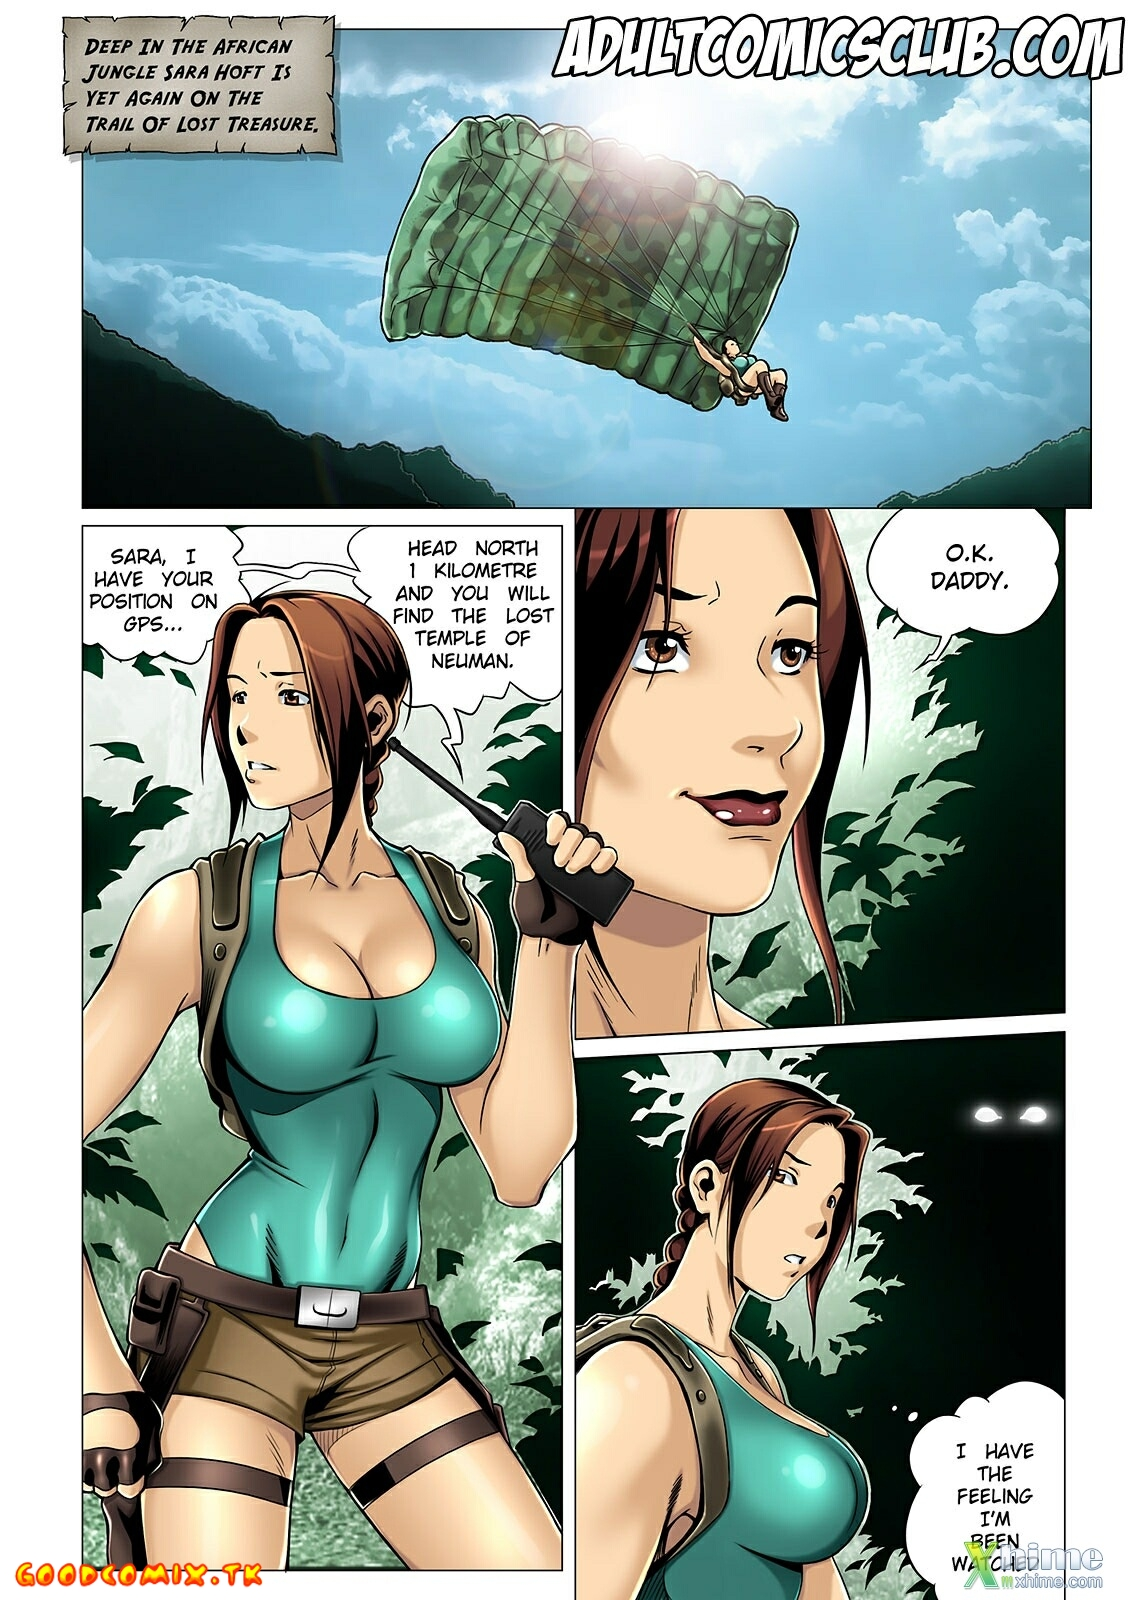 Goodcomix.tk Tomb Raider - [Melkor (Romulo Mancin)] - The Adventures of Sara Hoft - Sara Vs. Jungleman